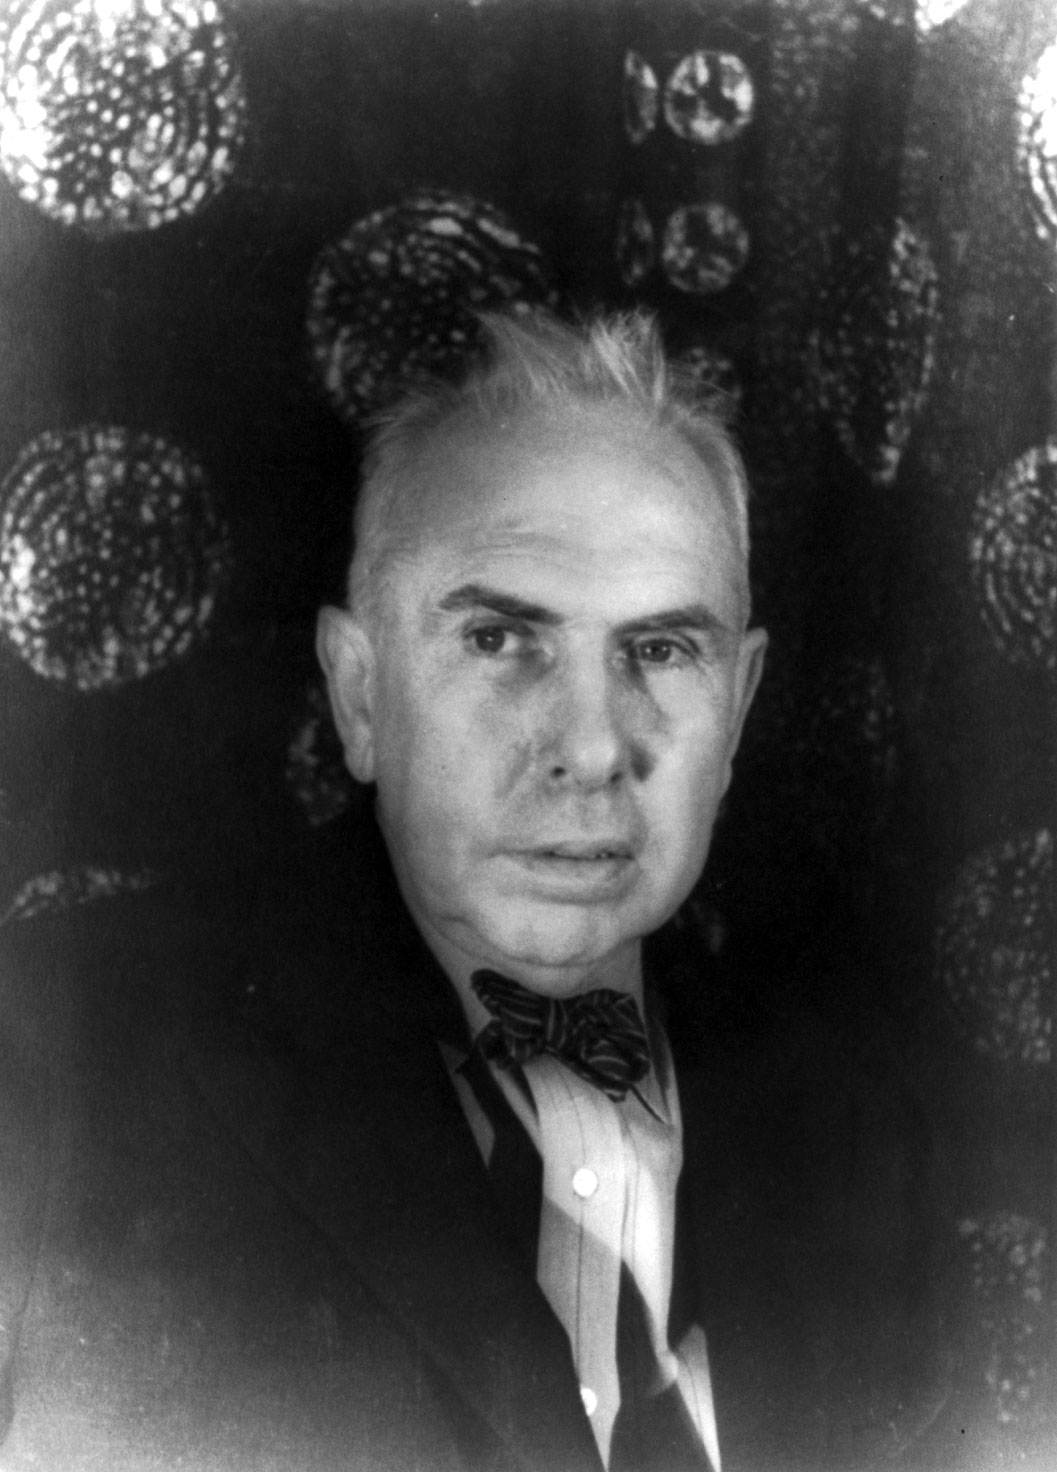 Portrait of Theodore Dreiser